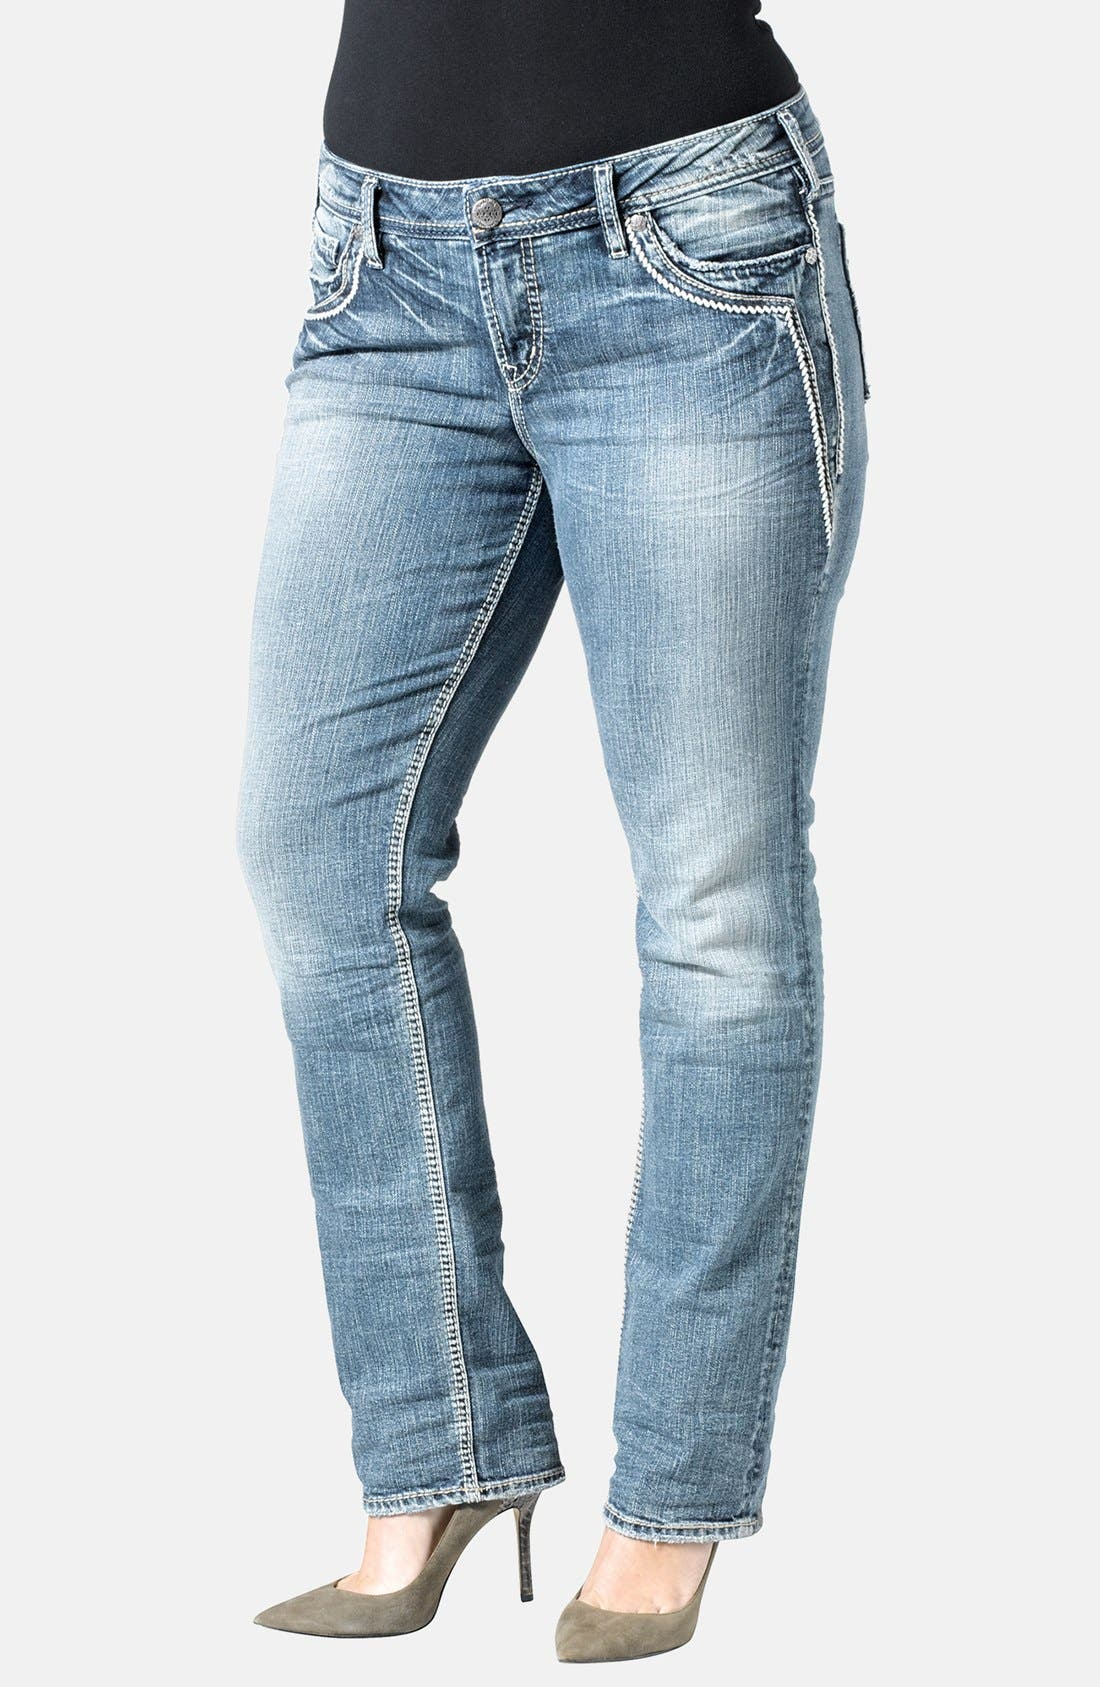 Alternate Image 1 Selected - Silver Jeans Co. 'Aiko' Straight Leg Jeans (Indigo) (Plus Size)